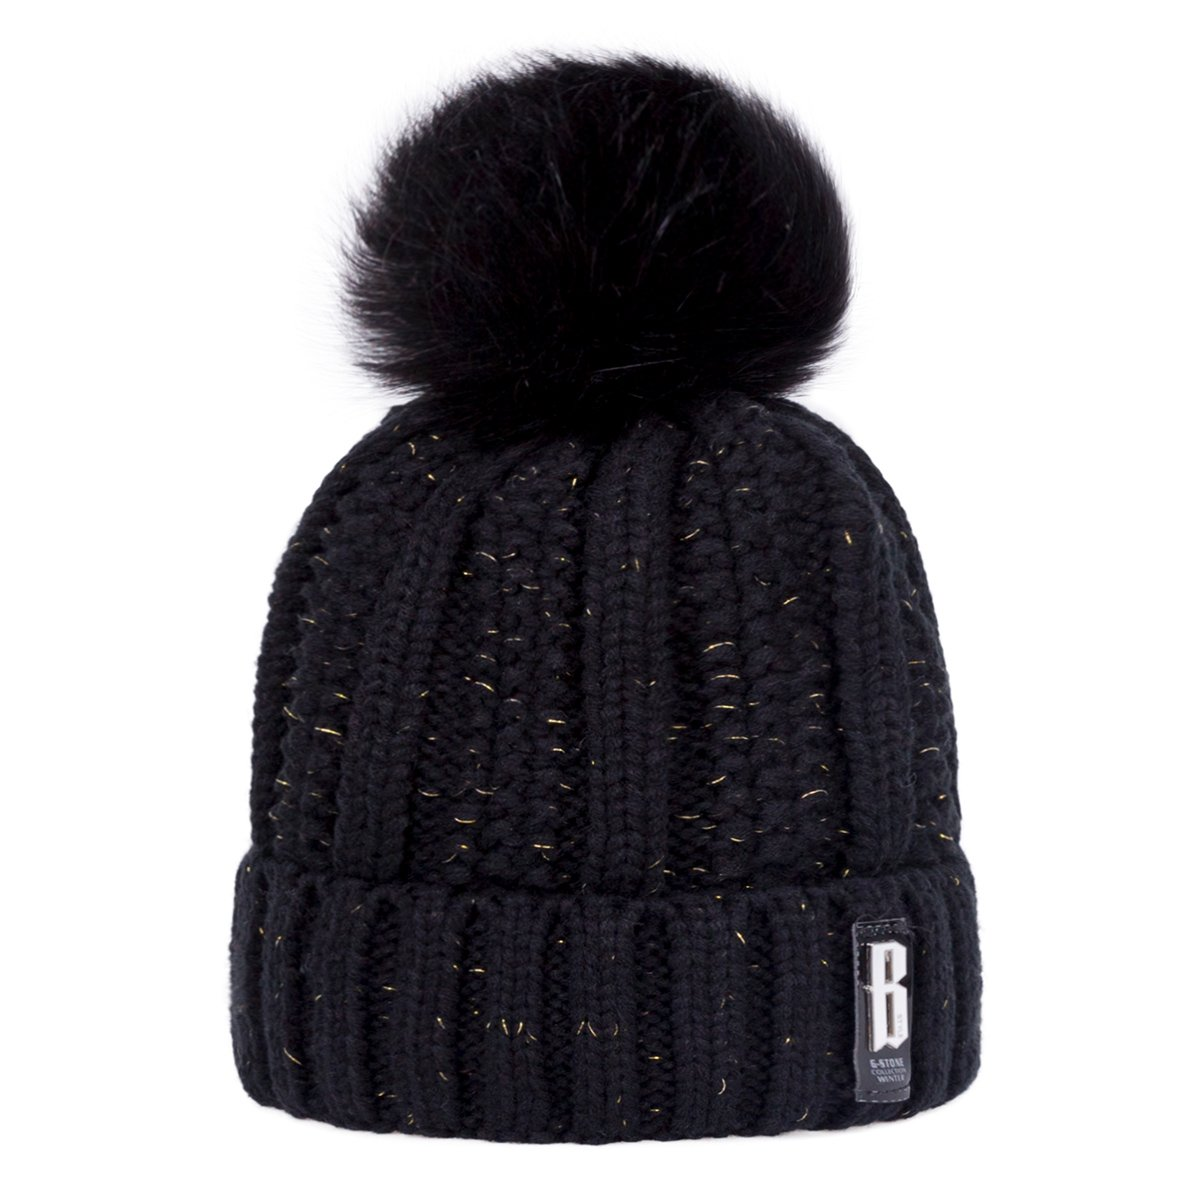 Thick Pom Beanie Hat, ADUO Women\'s Winter Fleece Lined Cable Knitted Pom Beanie Hat (Black)